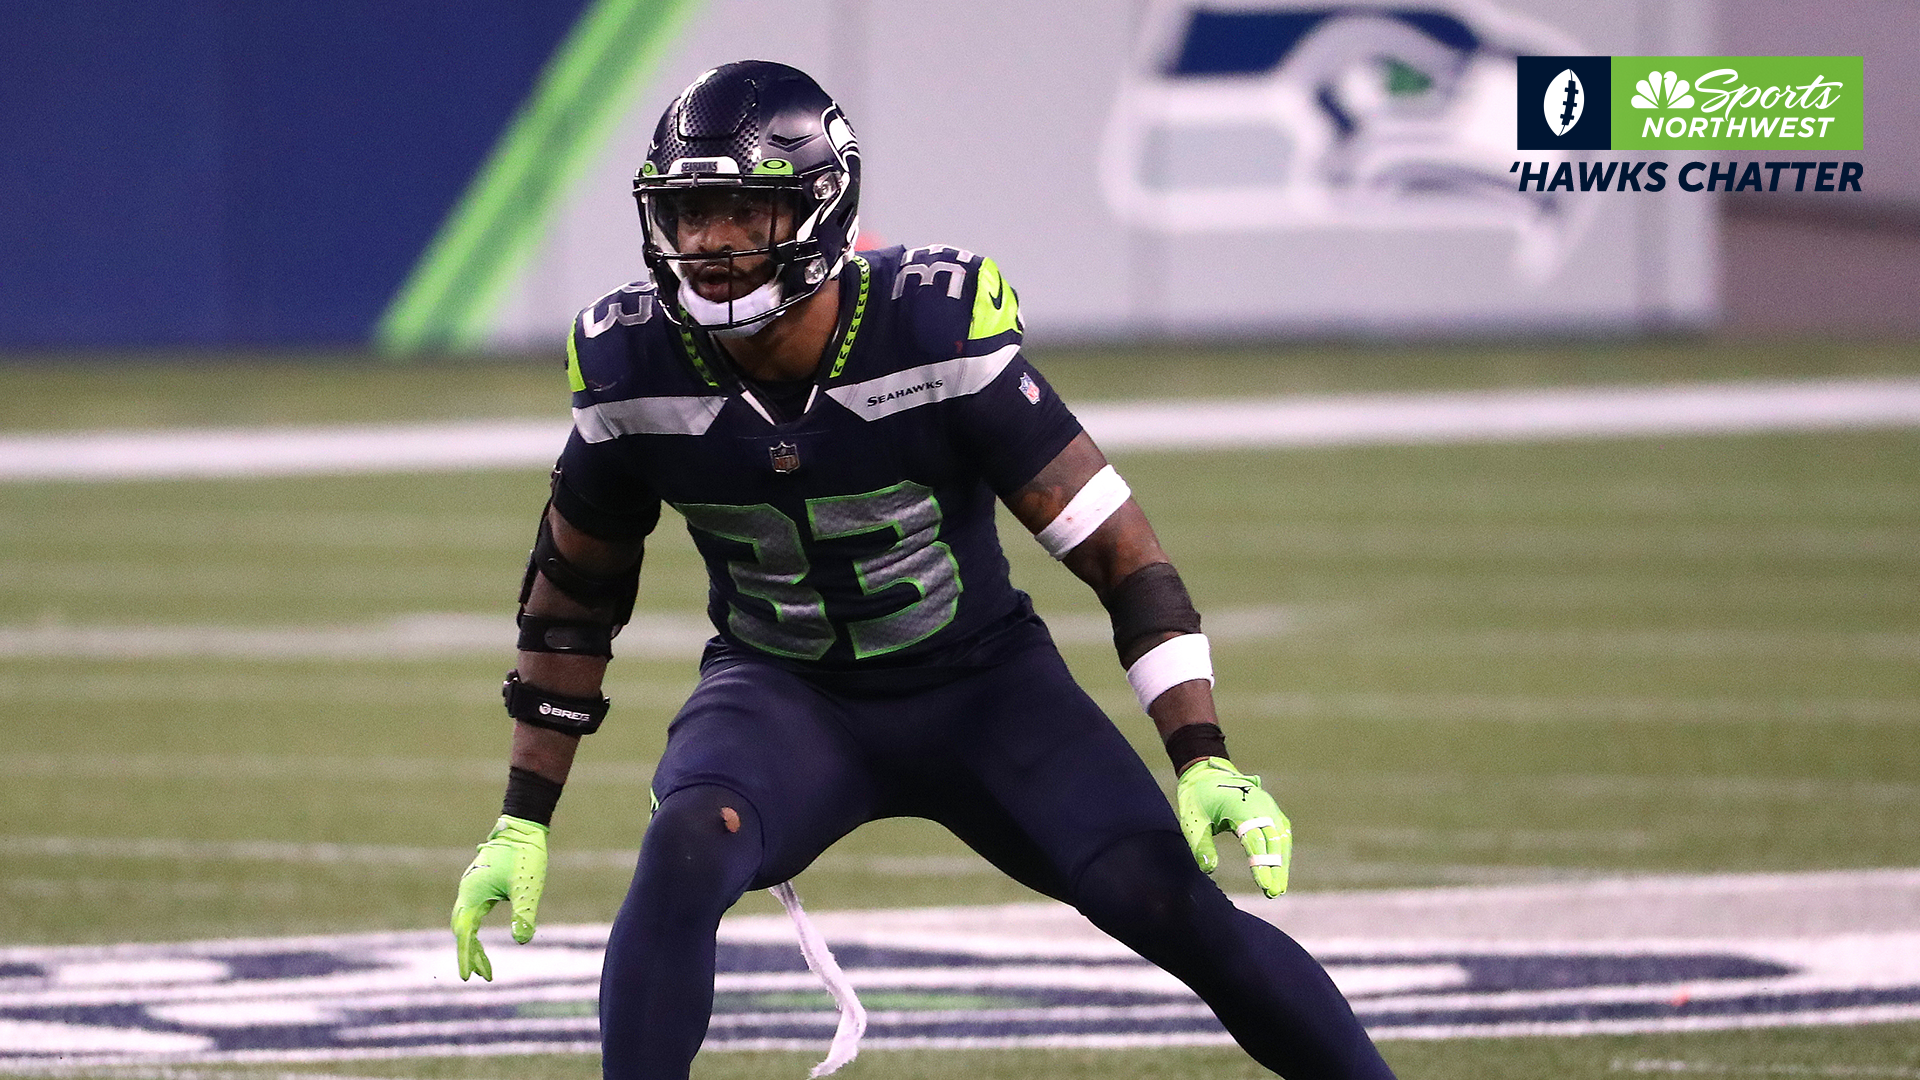 Seahawks Jamal Adams Starting To Get My Step Back After Groin Injury